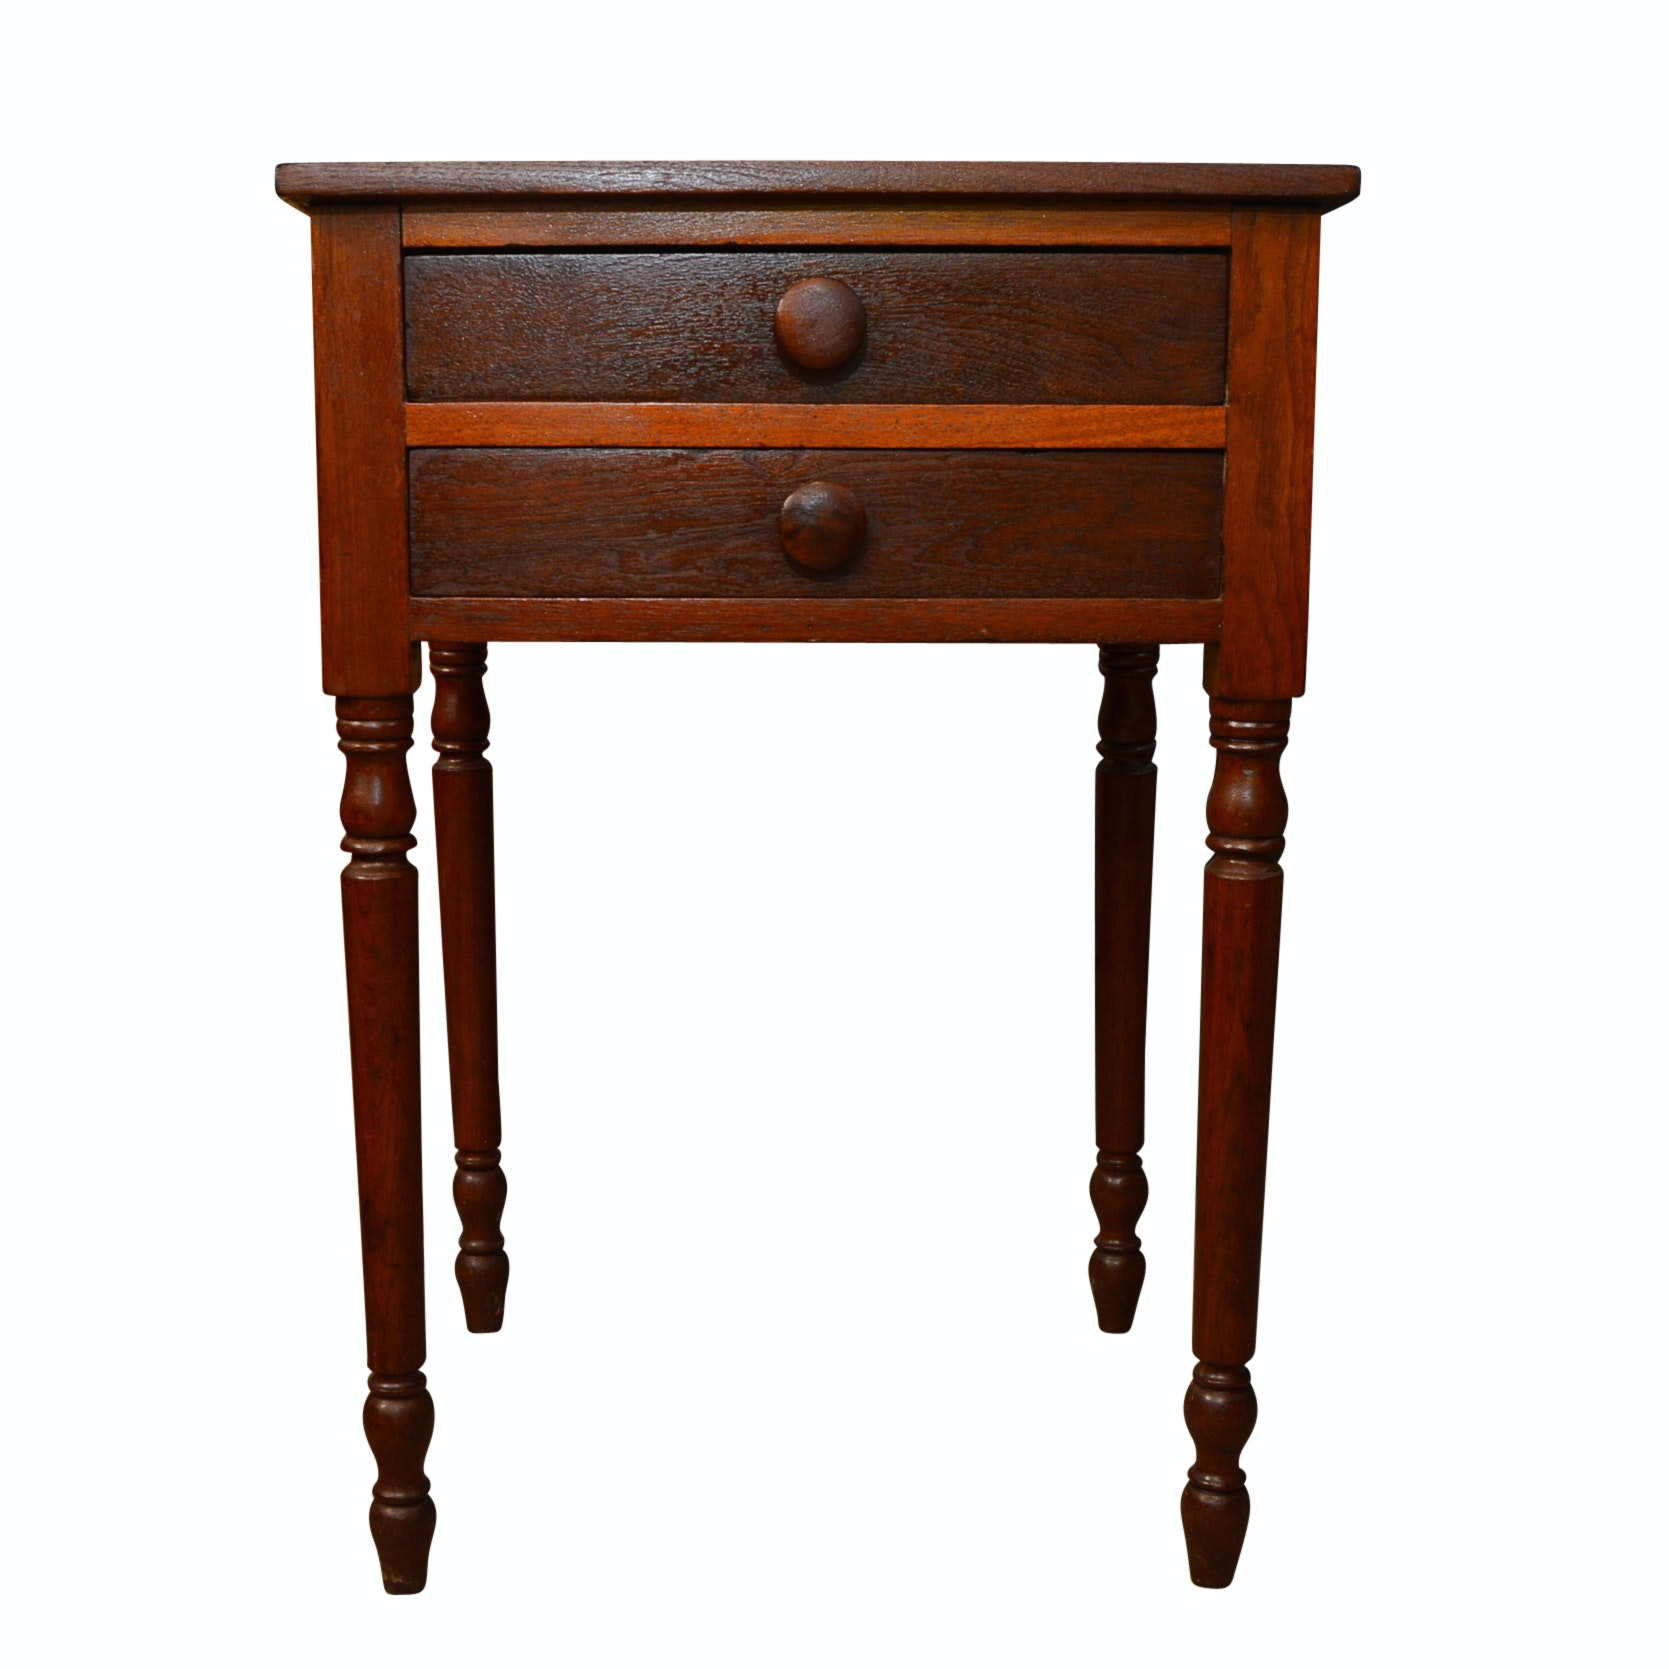 19th Century Sheraton Style Side Table